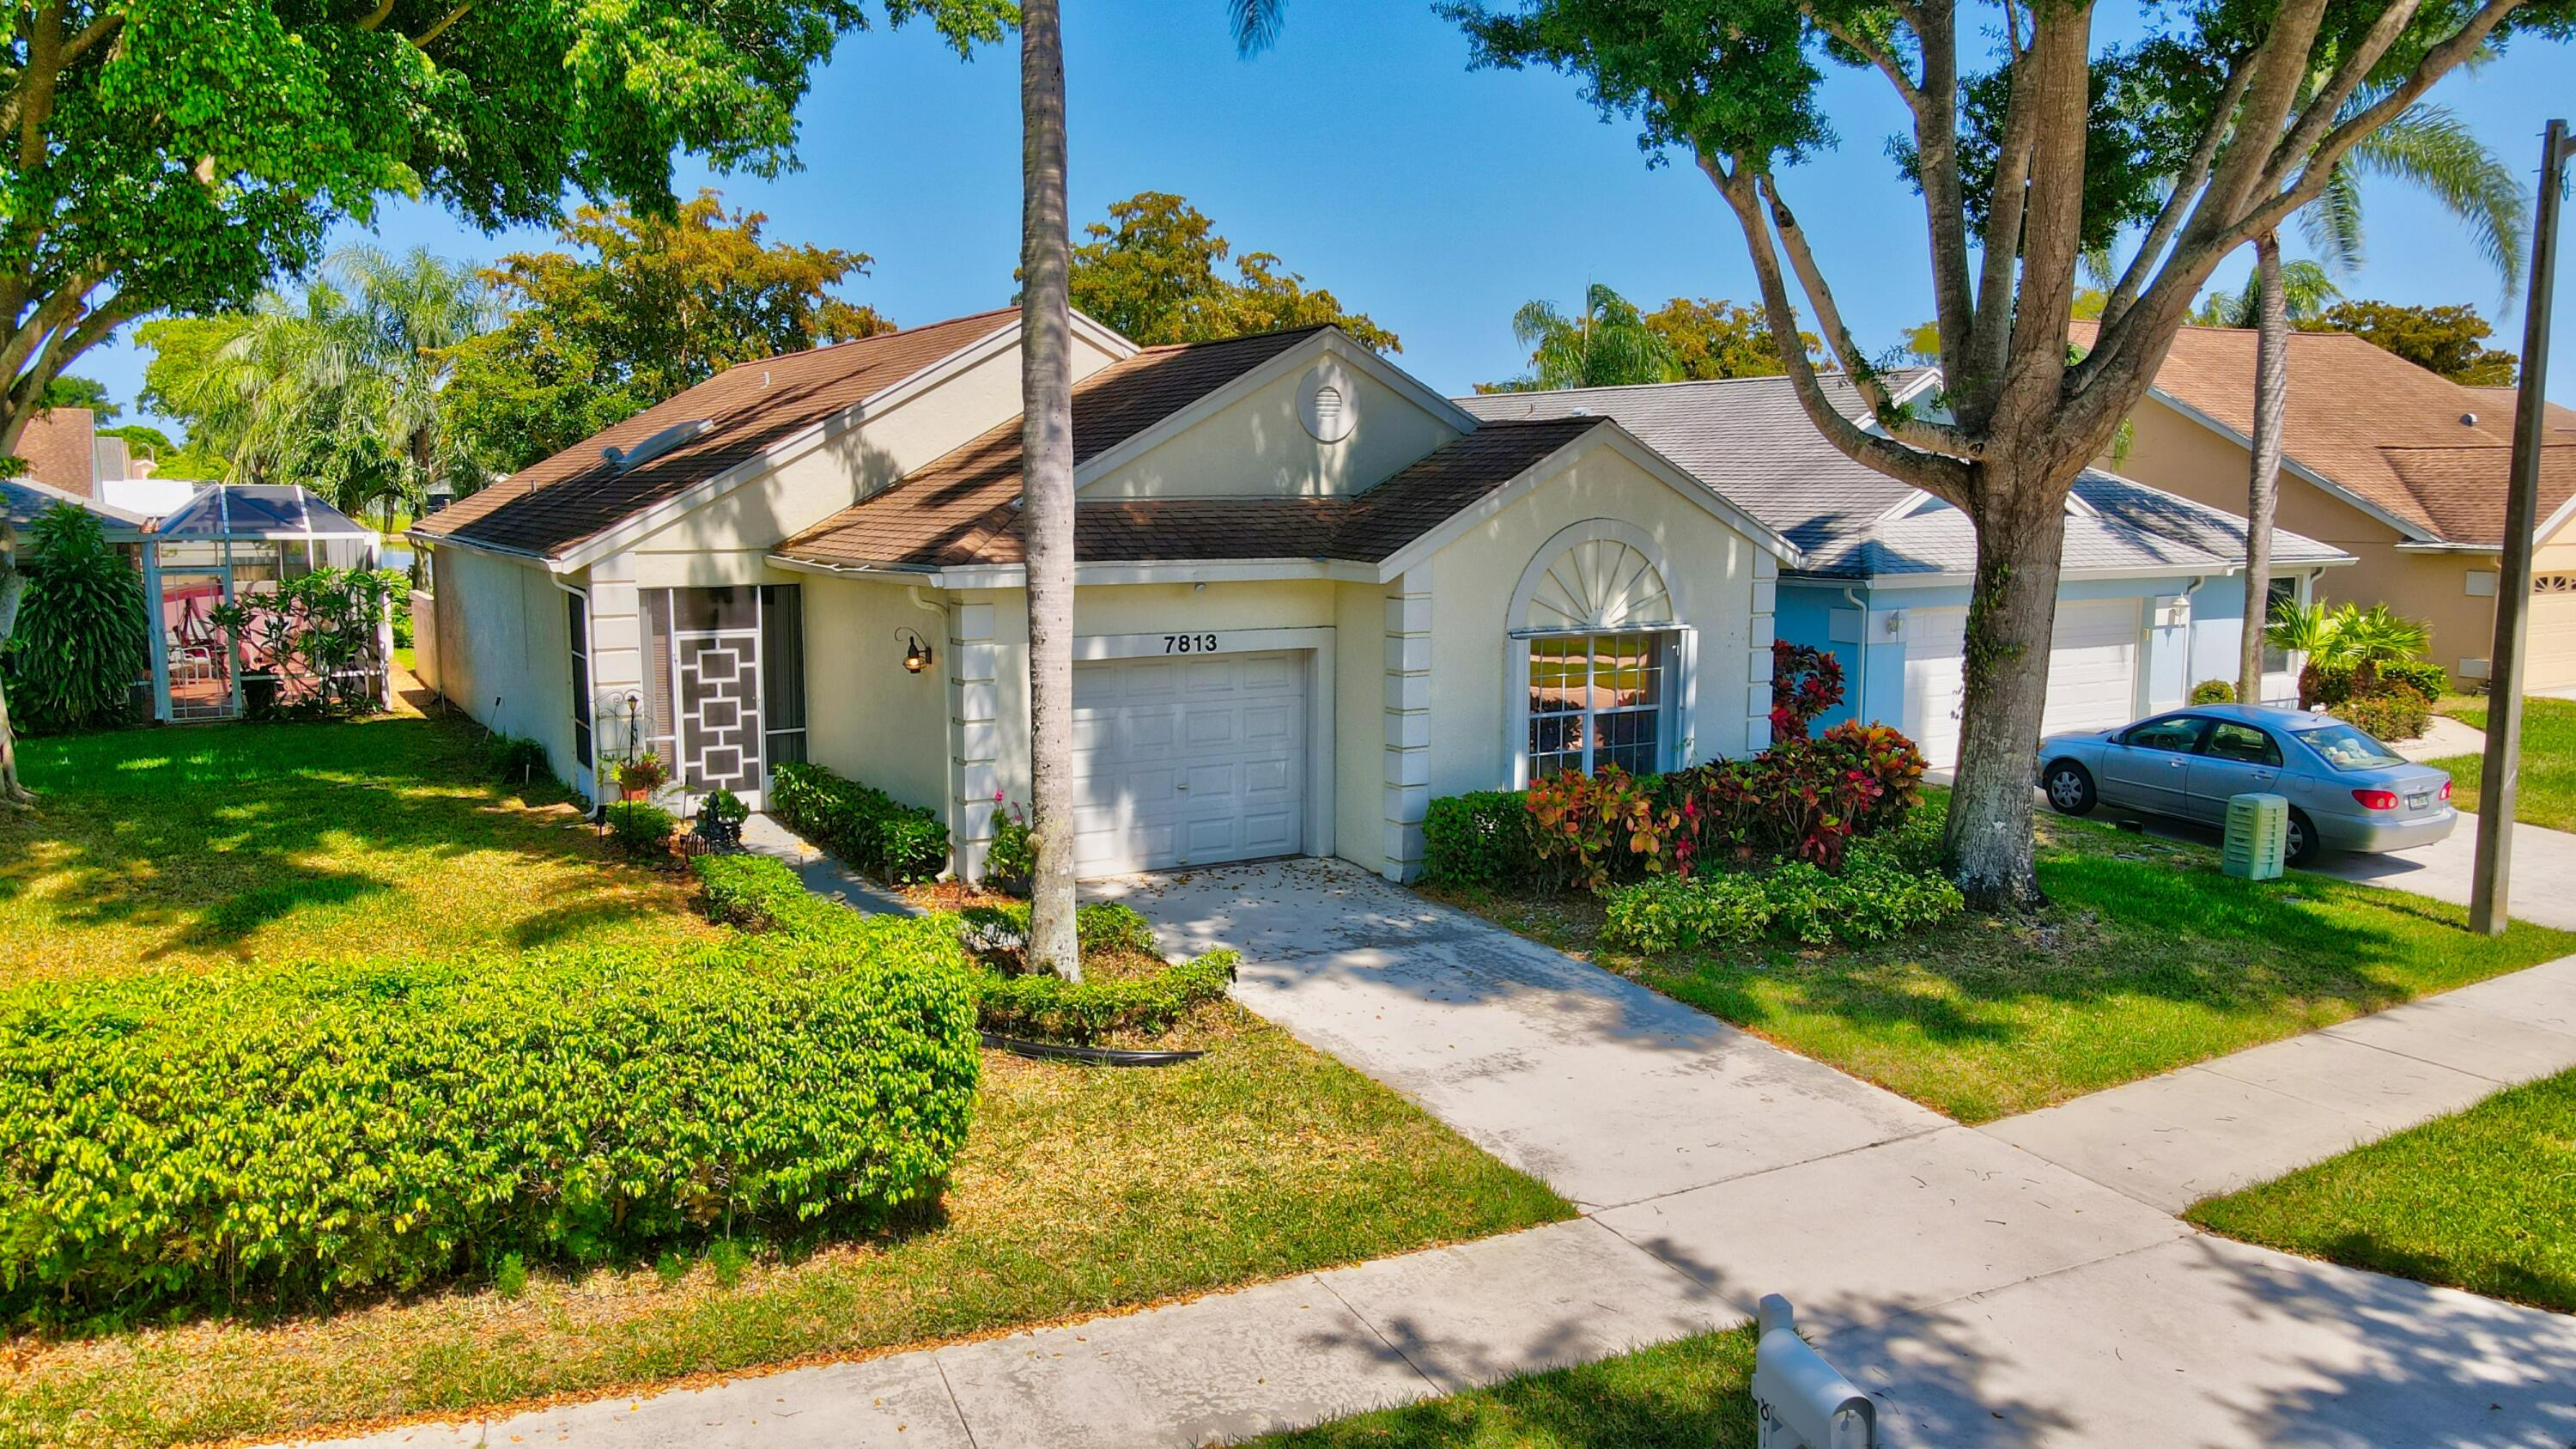 7813  Mansfield Hollow Road  For Sale 10718404, FL